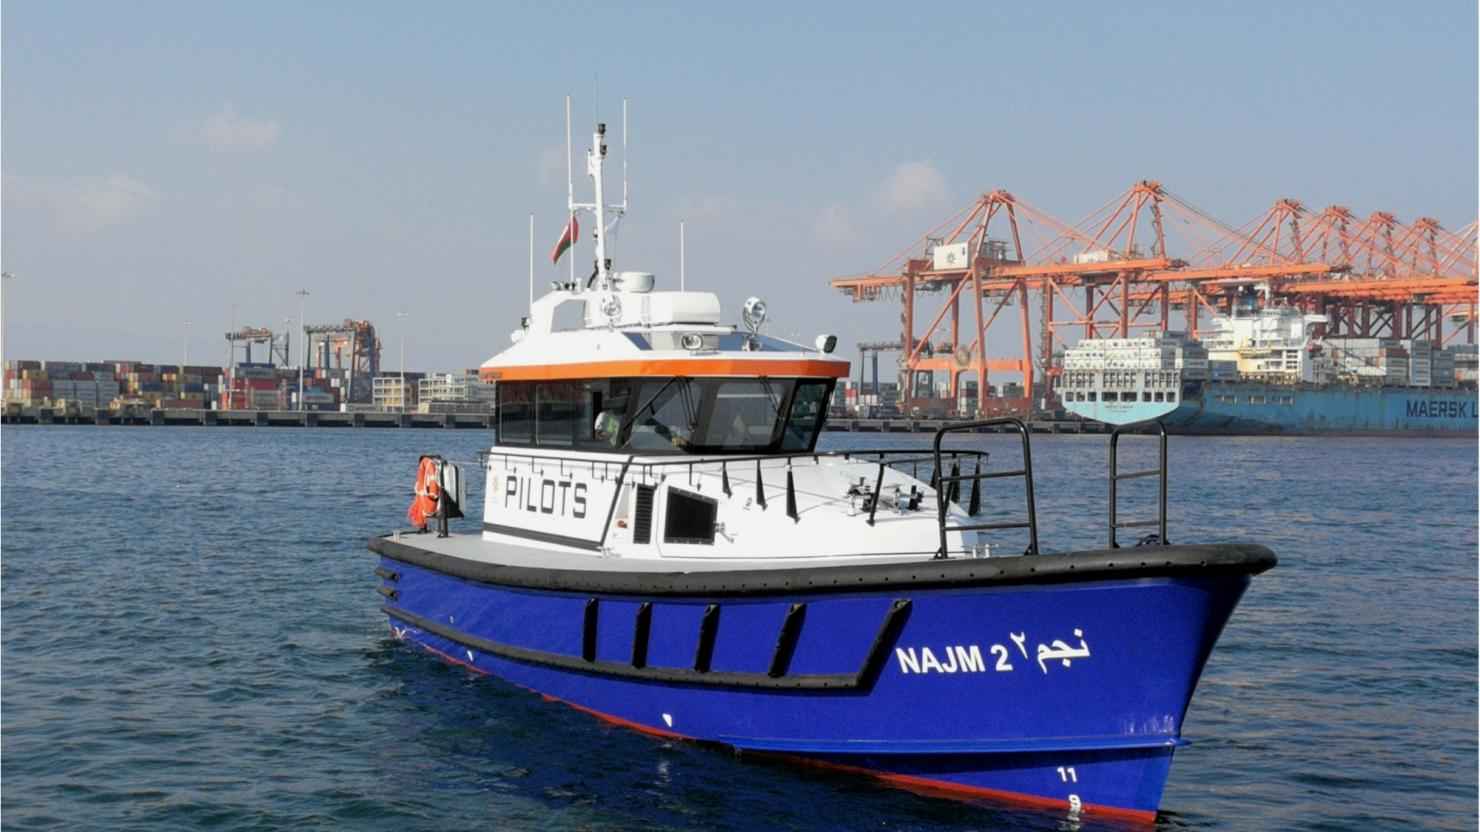 Salalah Port CEO hails arrival of cutting-edge pilot boat